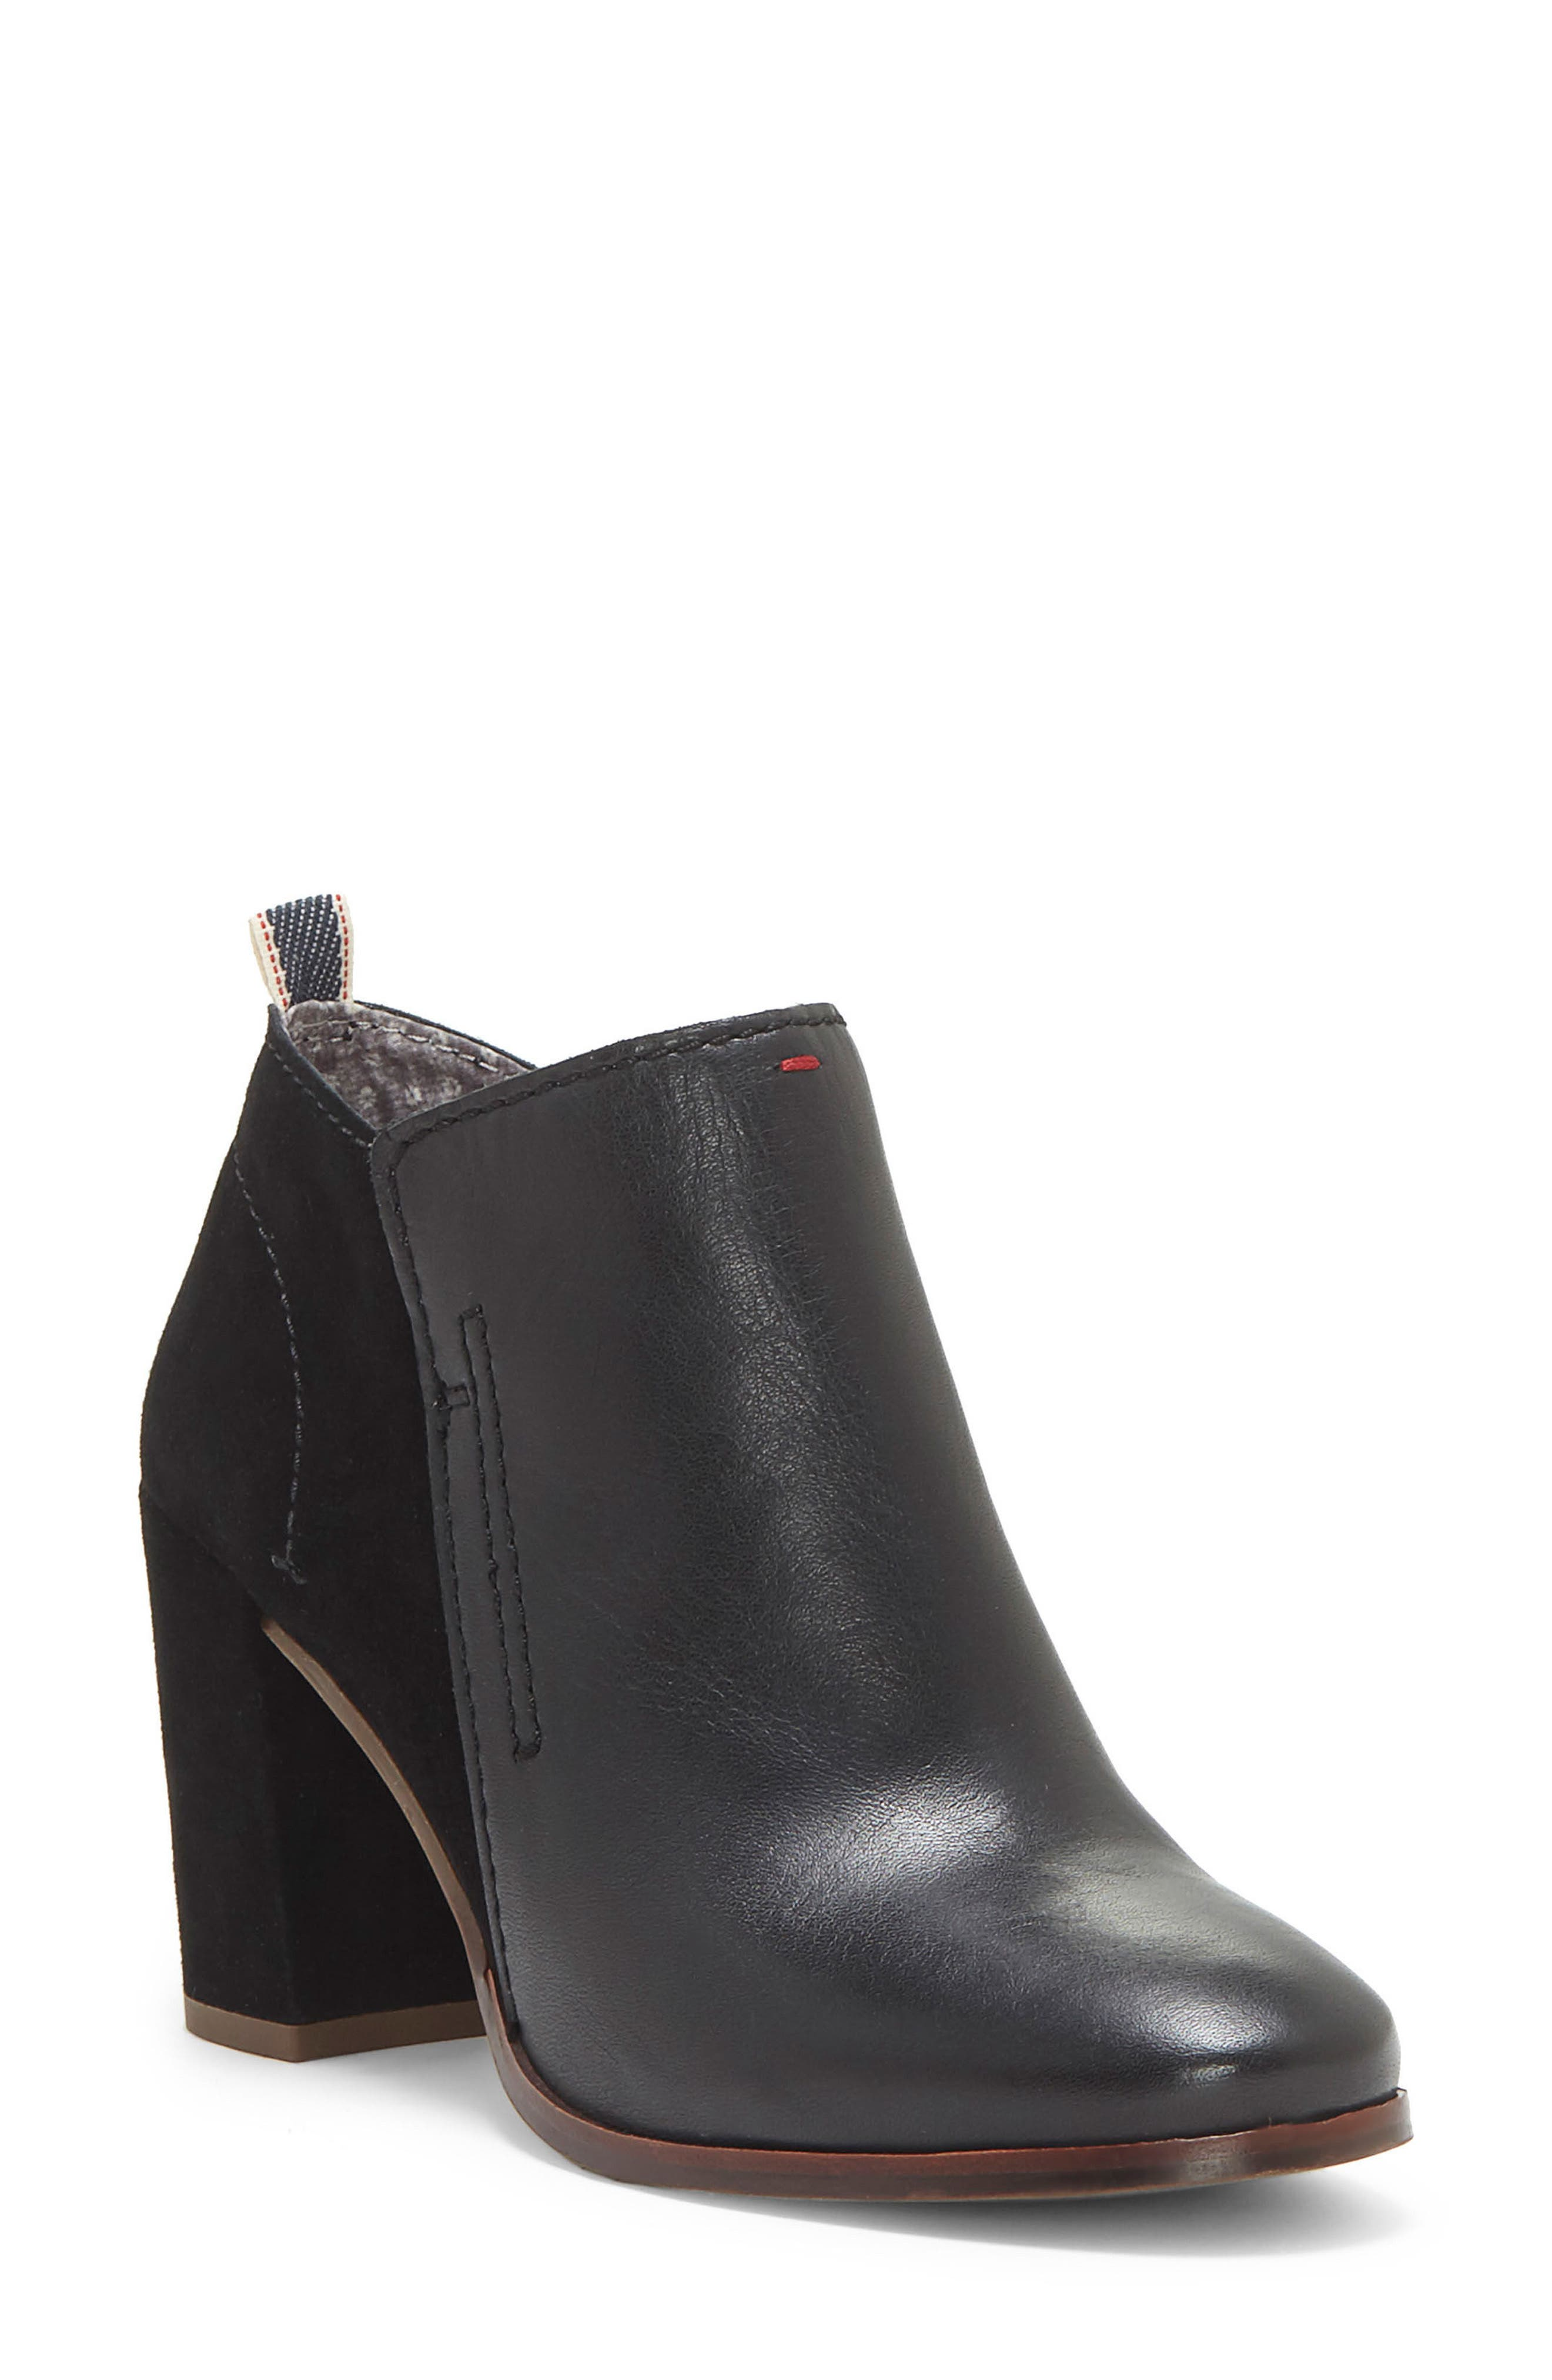 Madeleina Bootie,                         Main,                         color, Black Leather